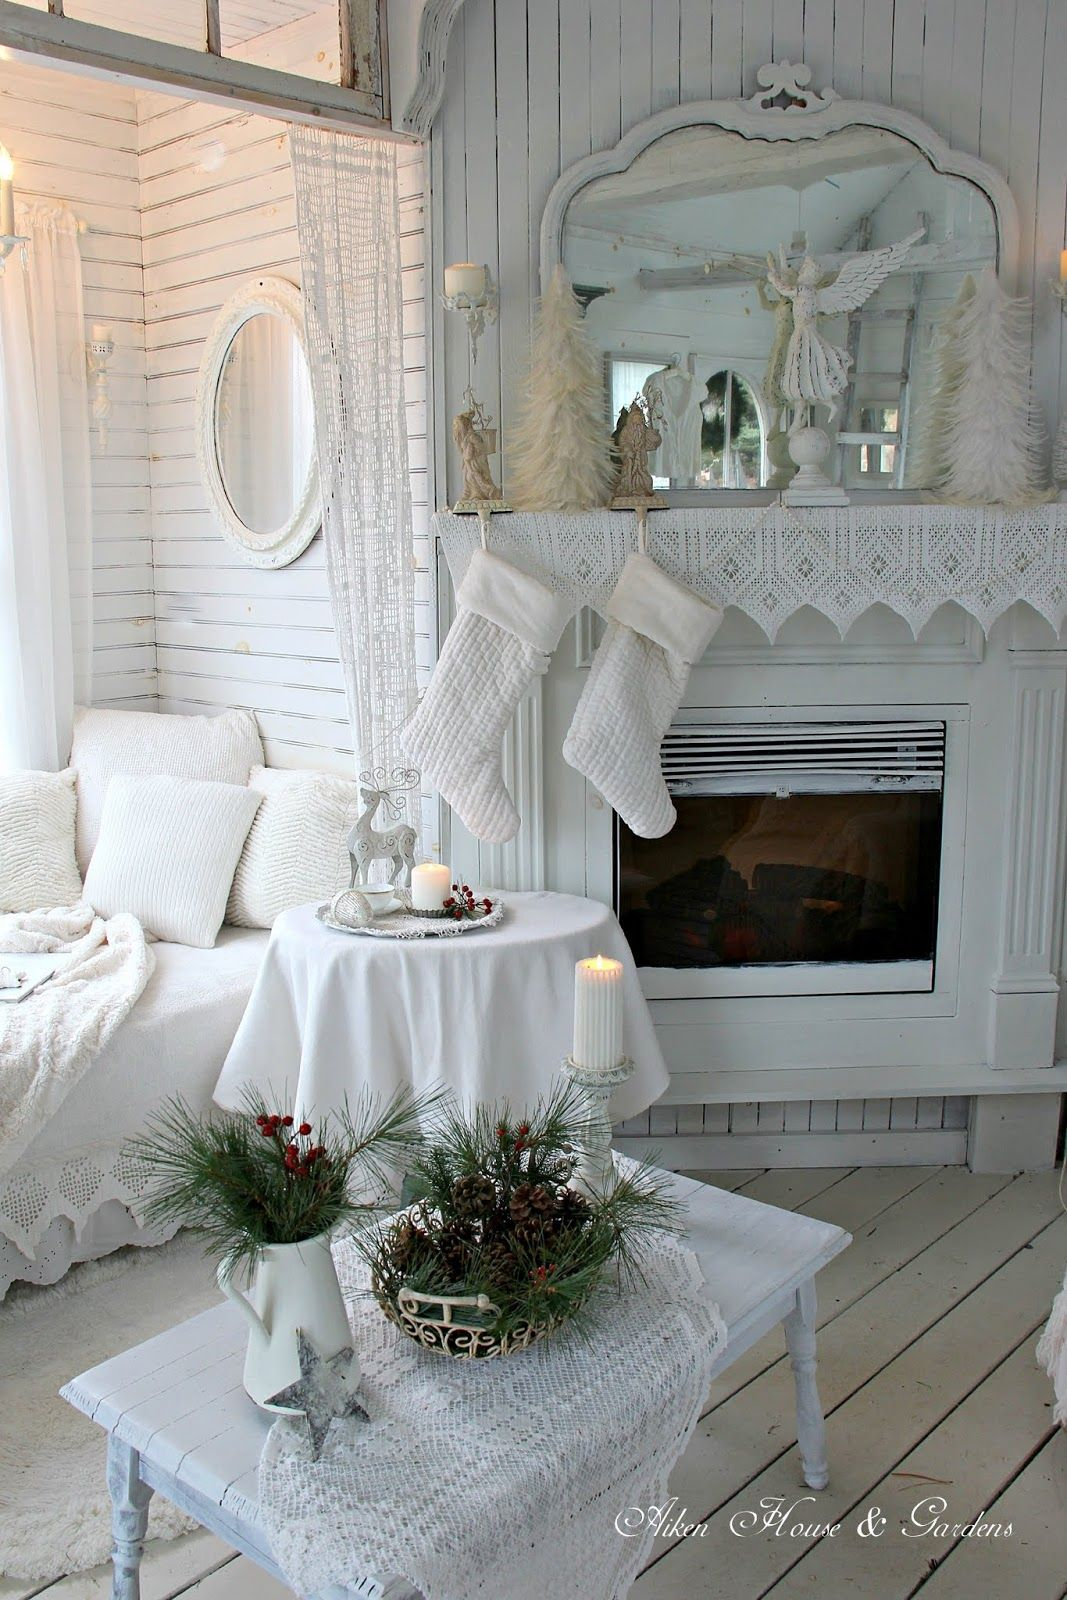 Aiken House & Gardens: A Winter White Christmas in our Boathouse ...